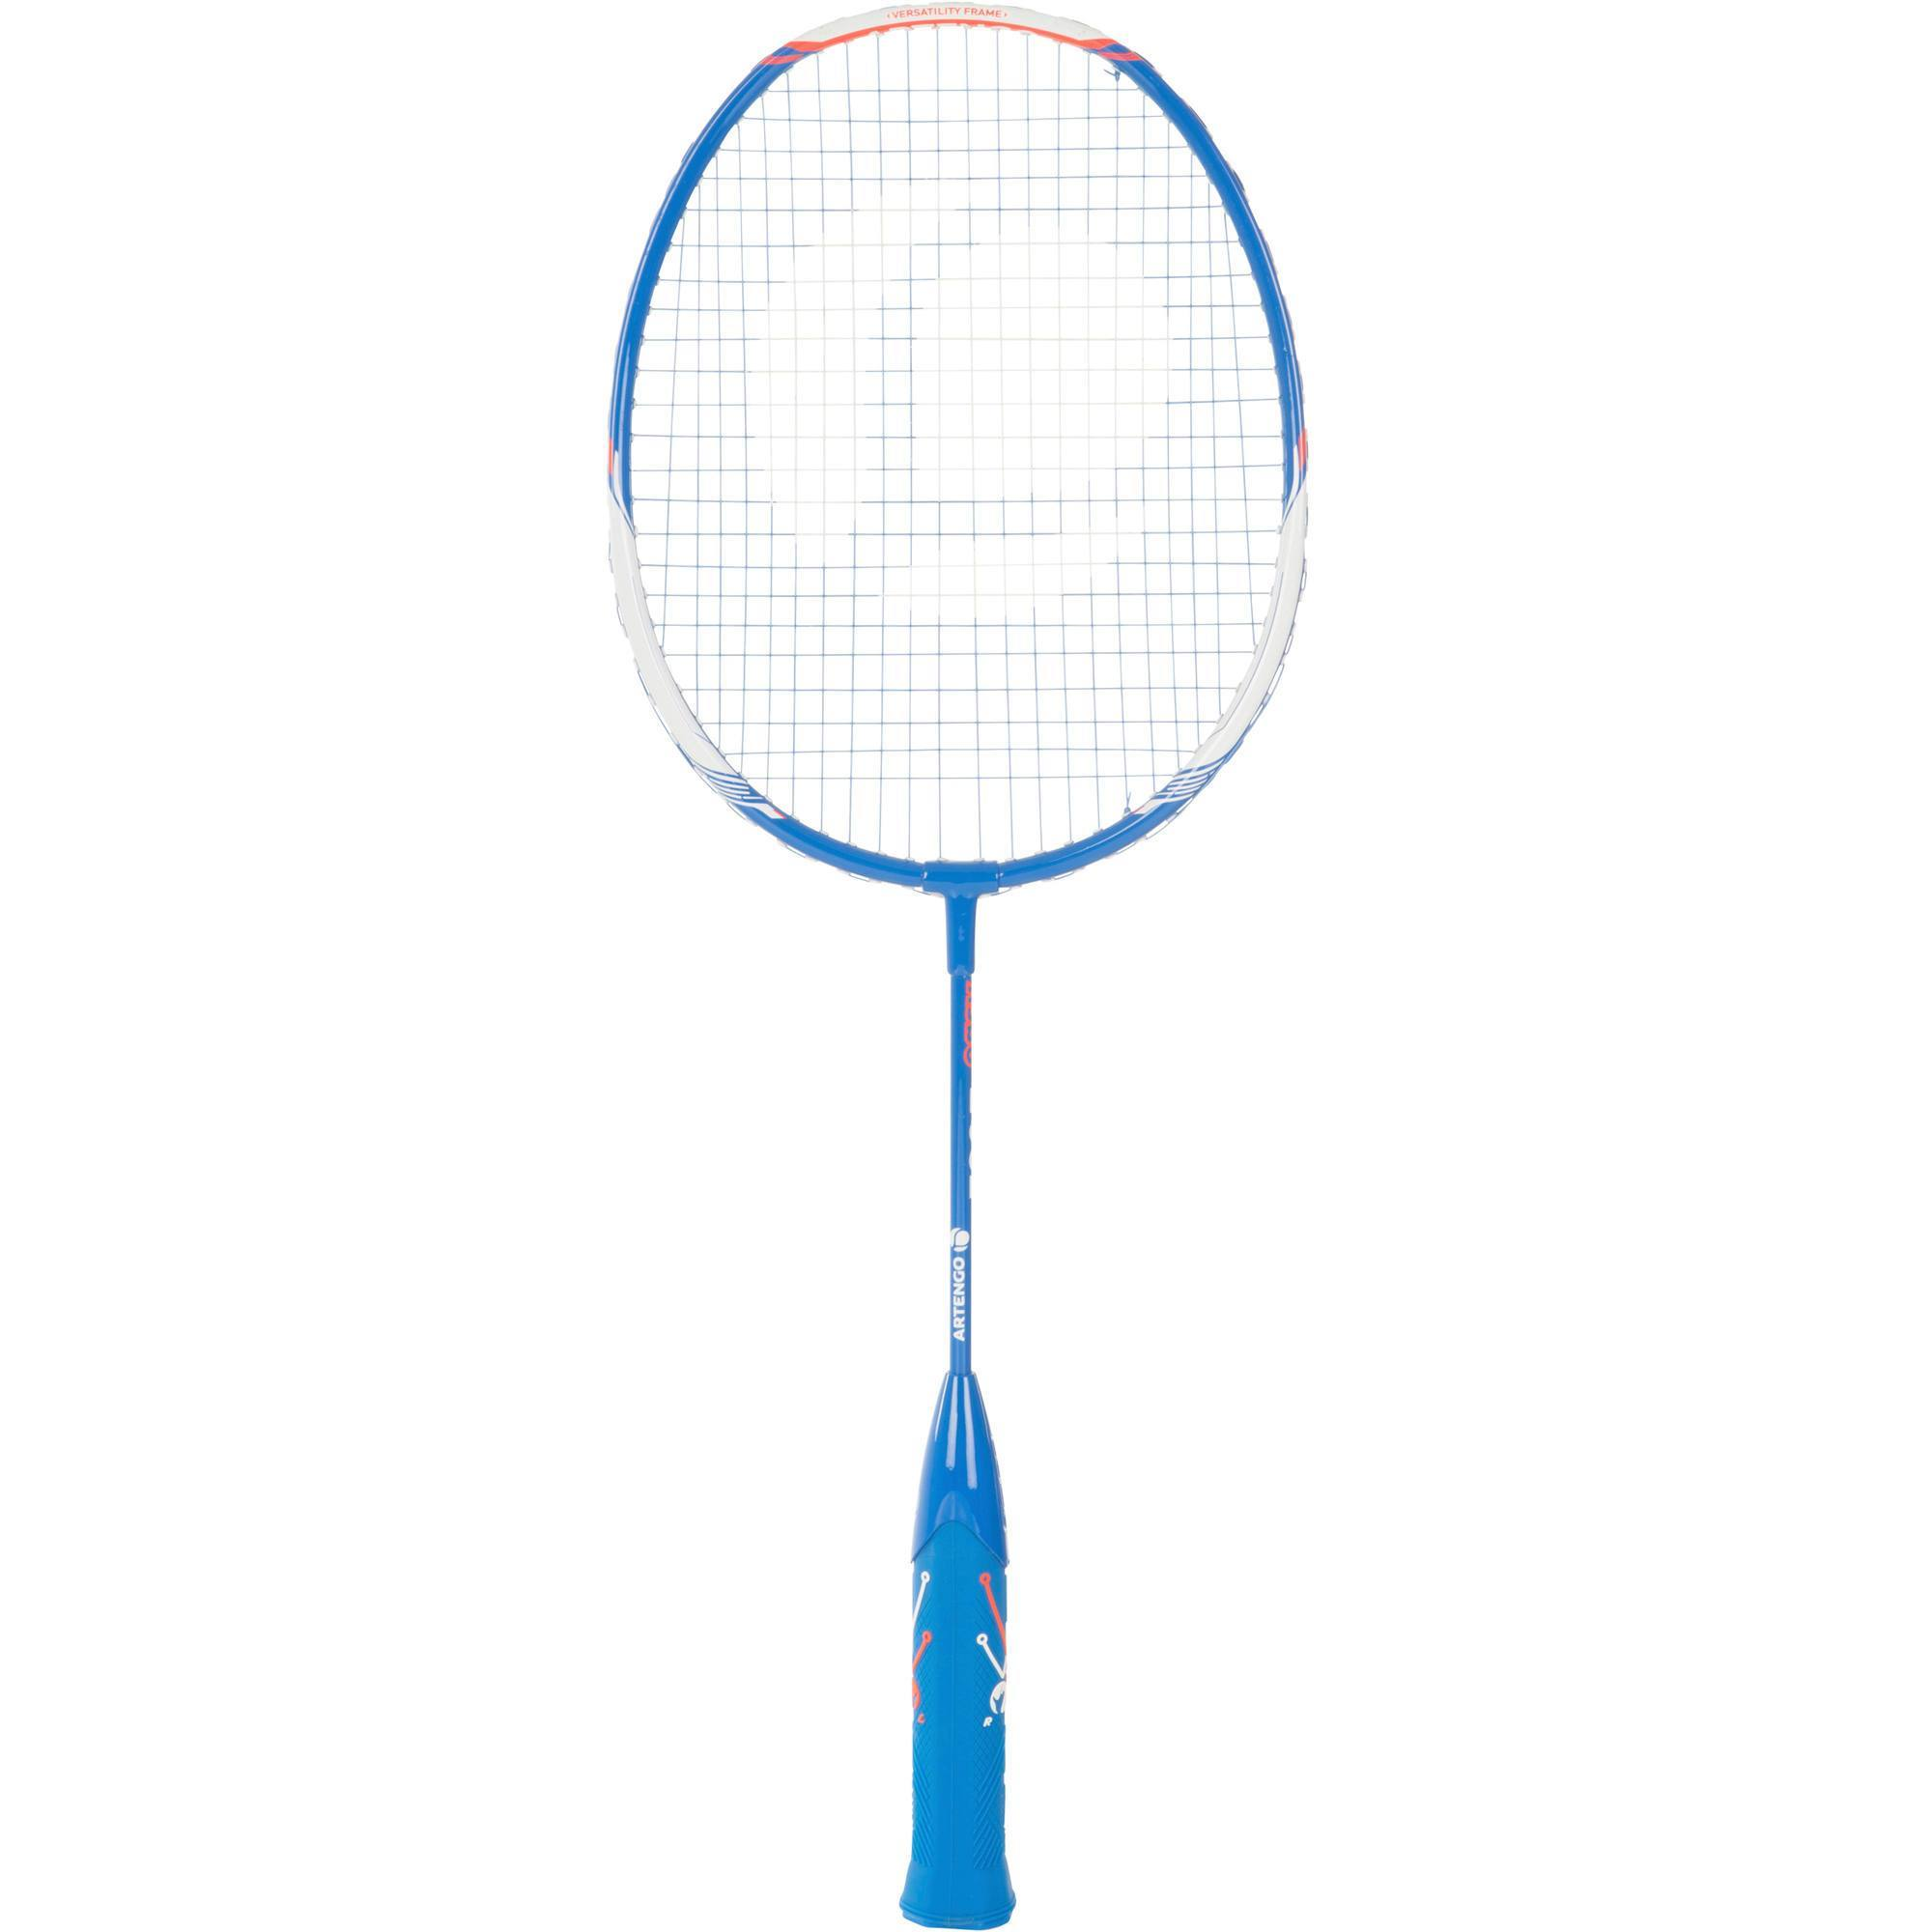 BR 700 JR Easy Grip Bleu Raquette junior de badminton